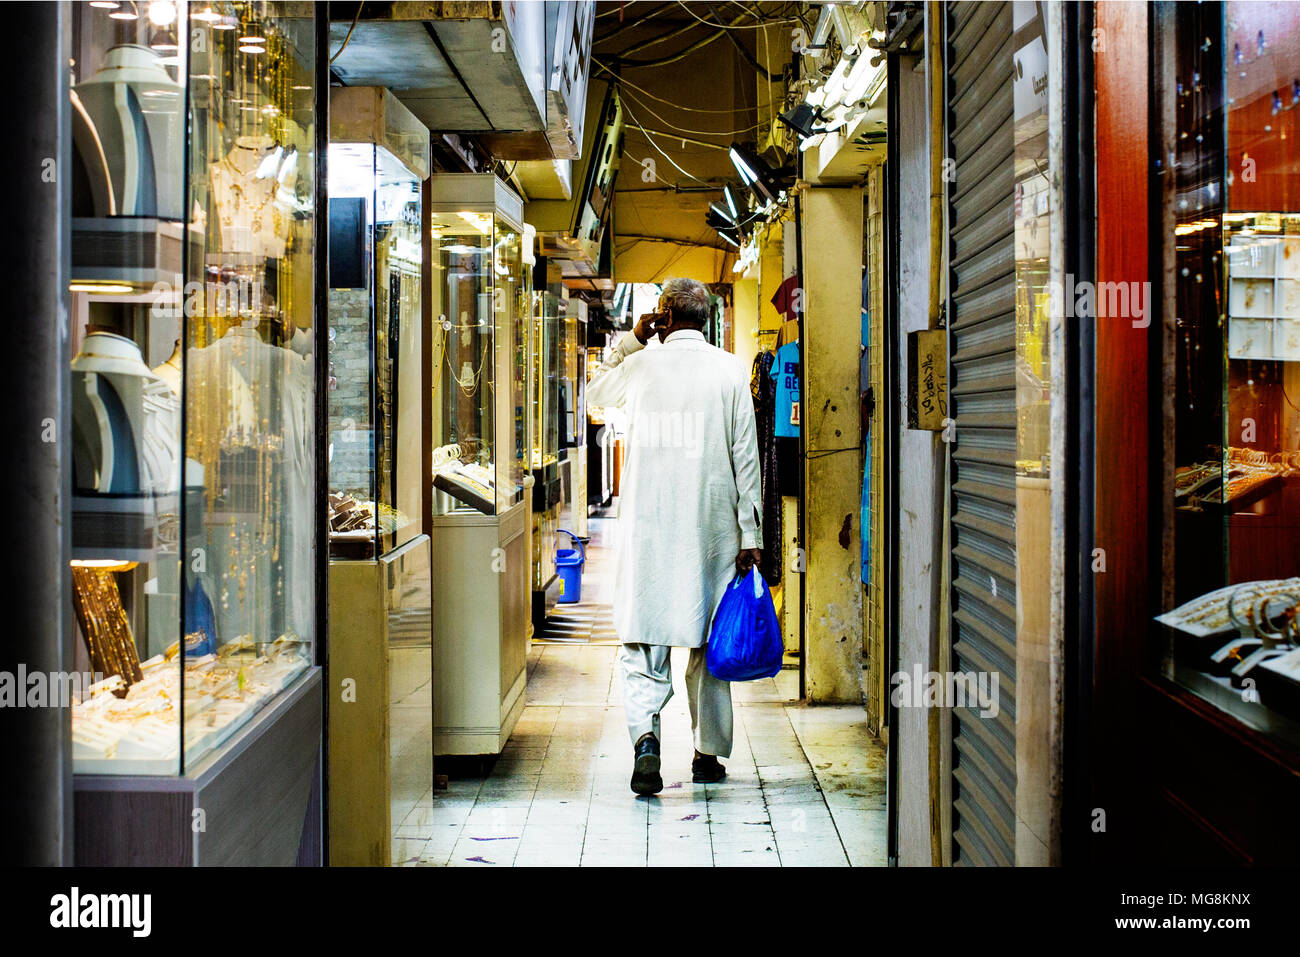 Man shopping in a souq in Kuwait - Stock Image